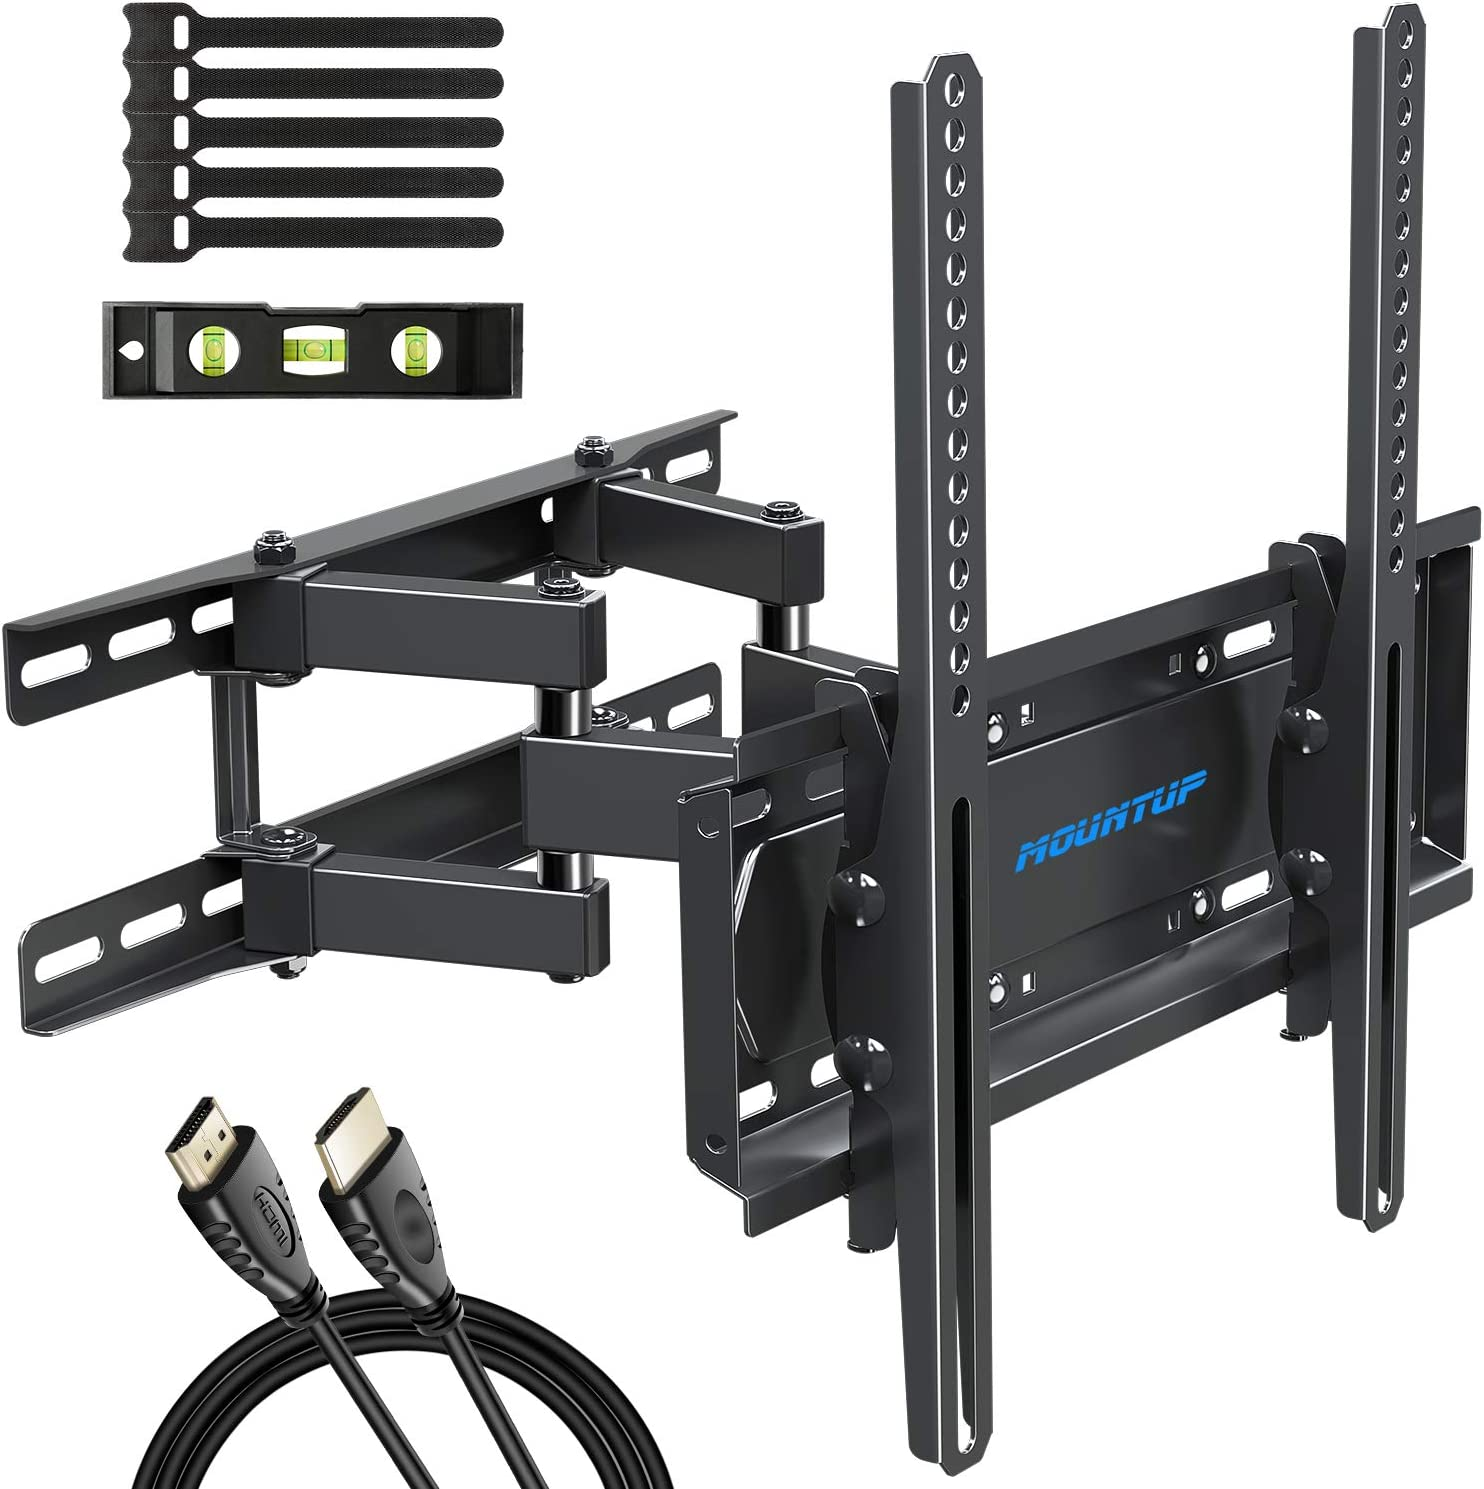 Mountup Tv Wall Mounts Full Motion Tv Wall Mount For 26 55 Inch Flat Screens And Curved Tvs Up To 88 Lbs Wall Mount Tv Bracket With Dual Swivel Articulating Arms